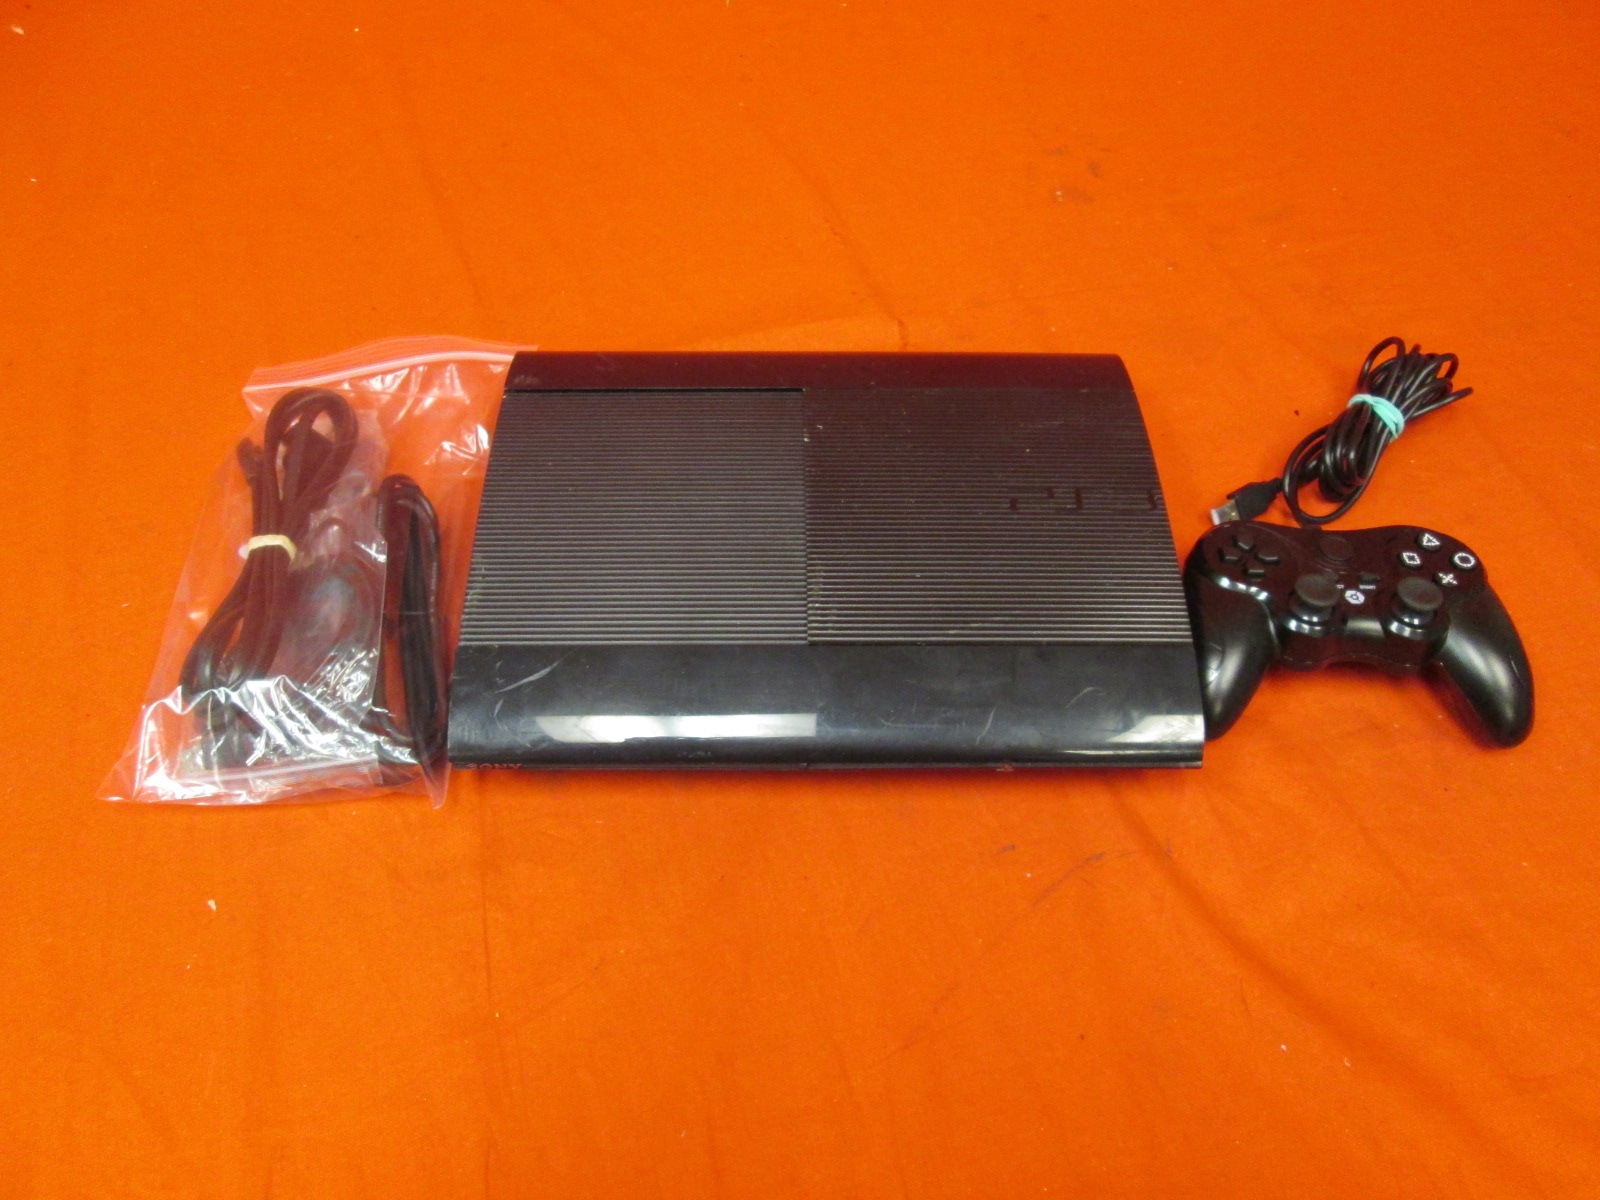 500 GB System For PlayStation 3